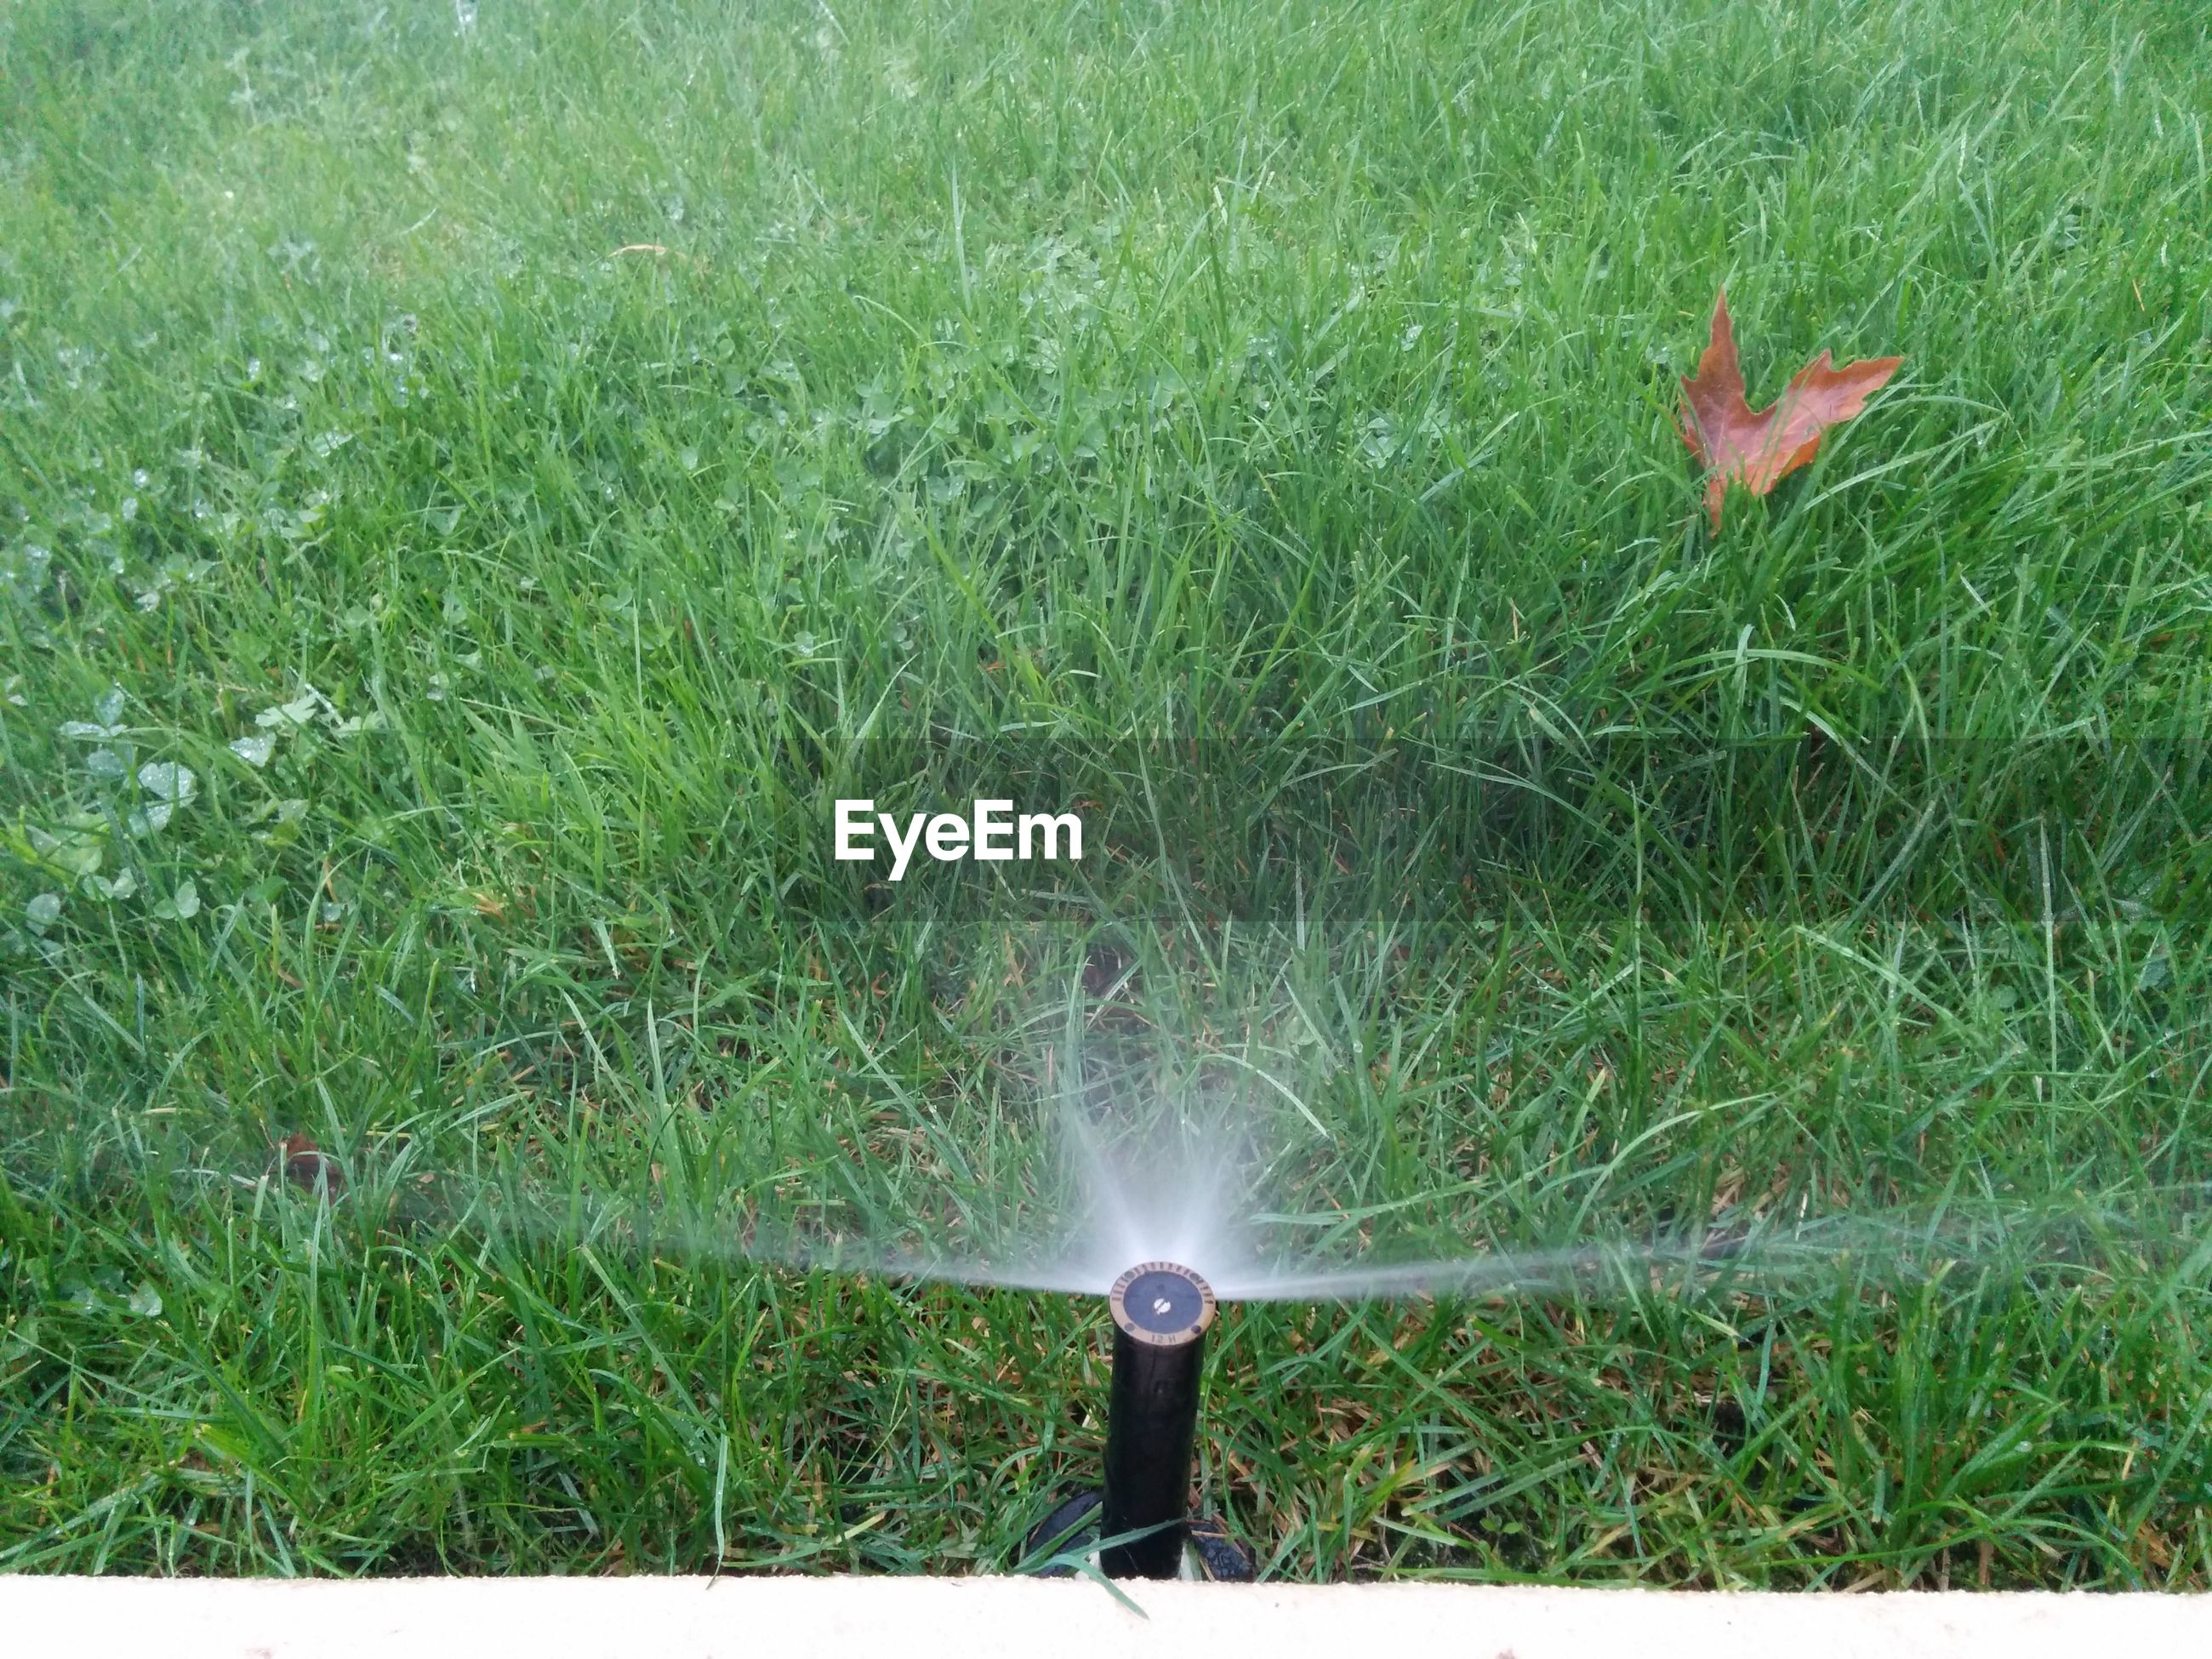 High angle view of agricultural sprinkler on grassy field